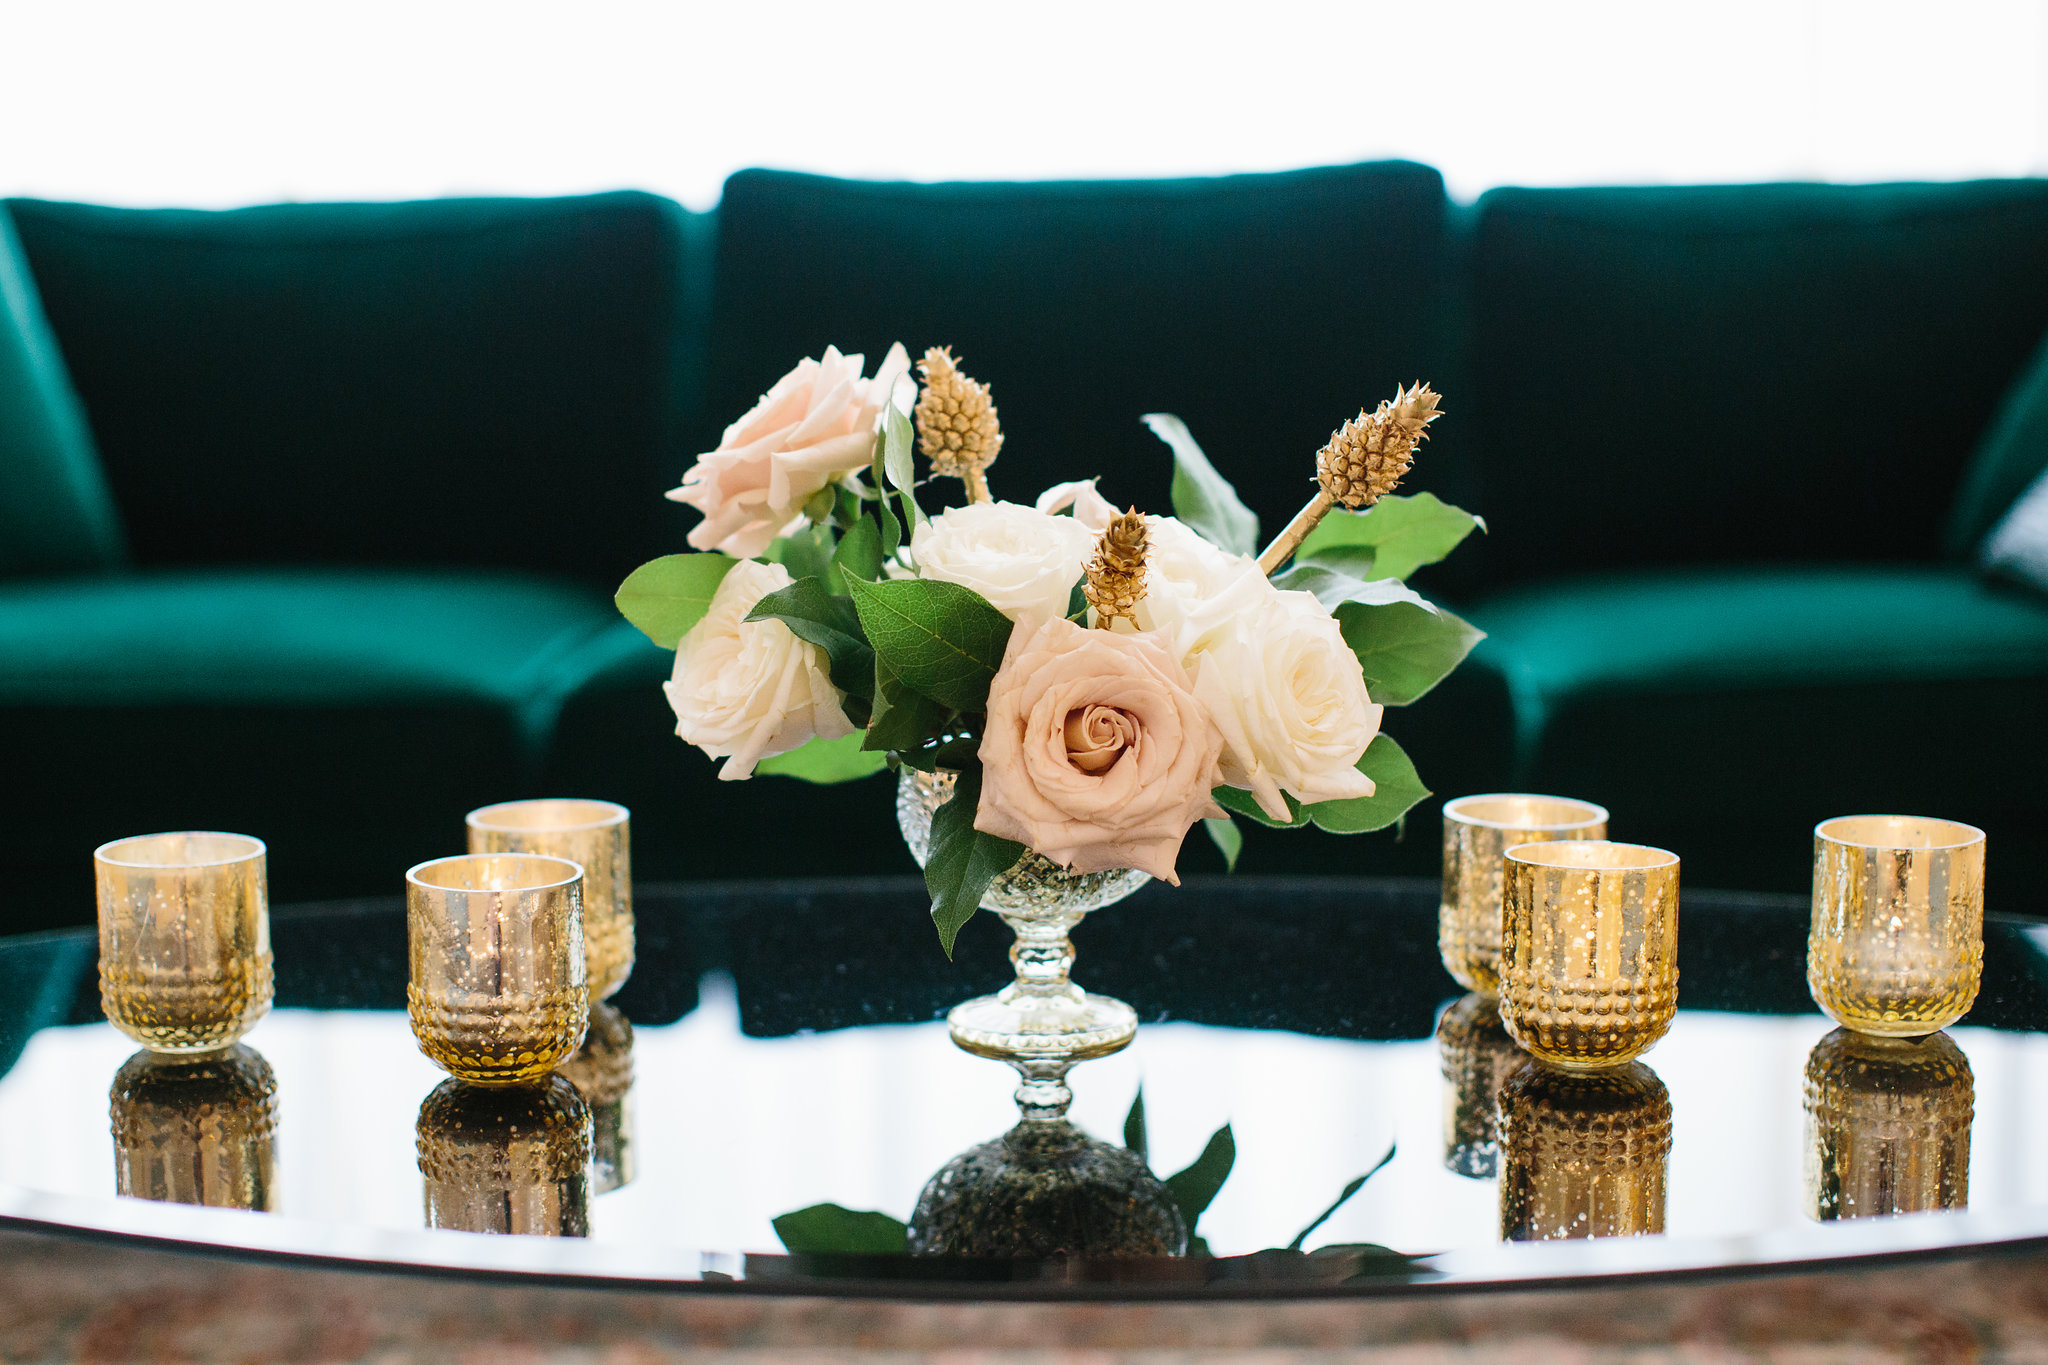 Wedding flowers by Fleur Inc at Chicago Illuminating Company.  Planning by LK Events, Images by Katie Kett Photography. Golden Pineapples